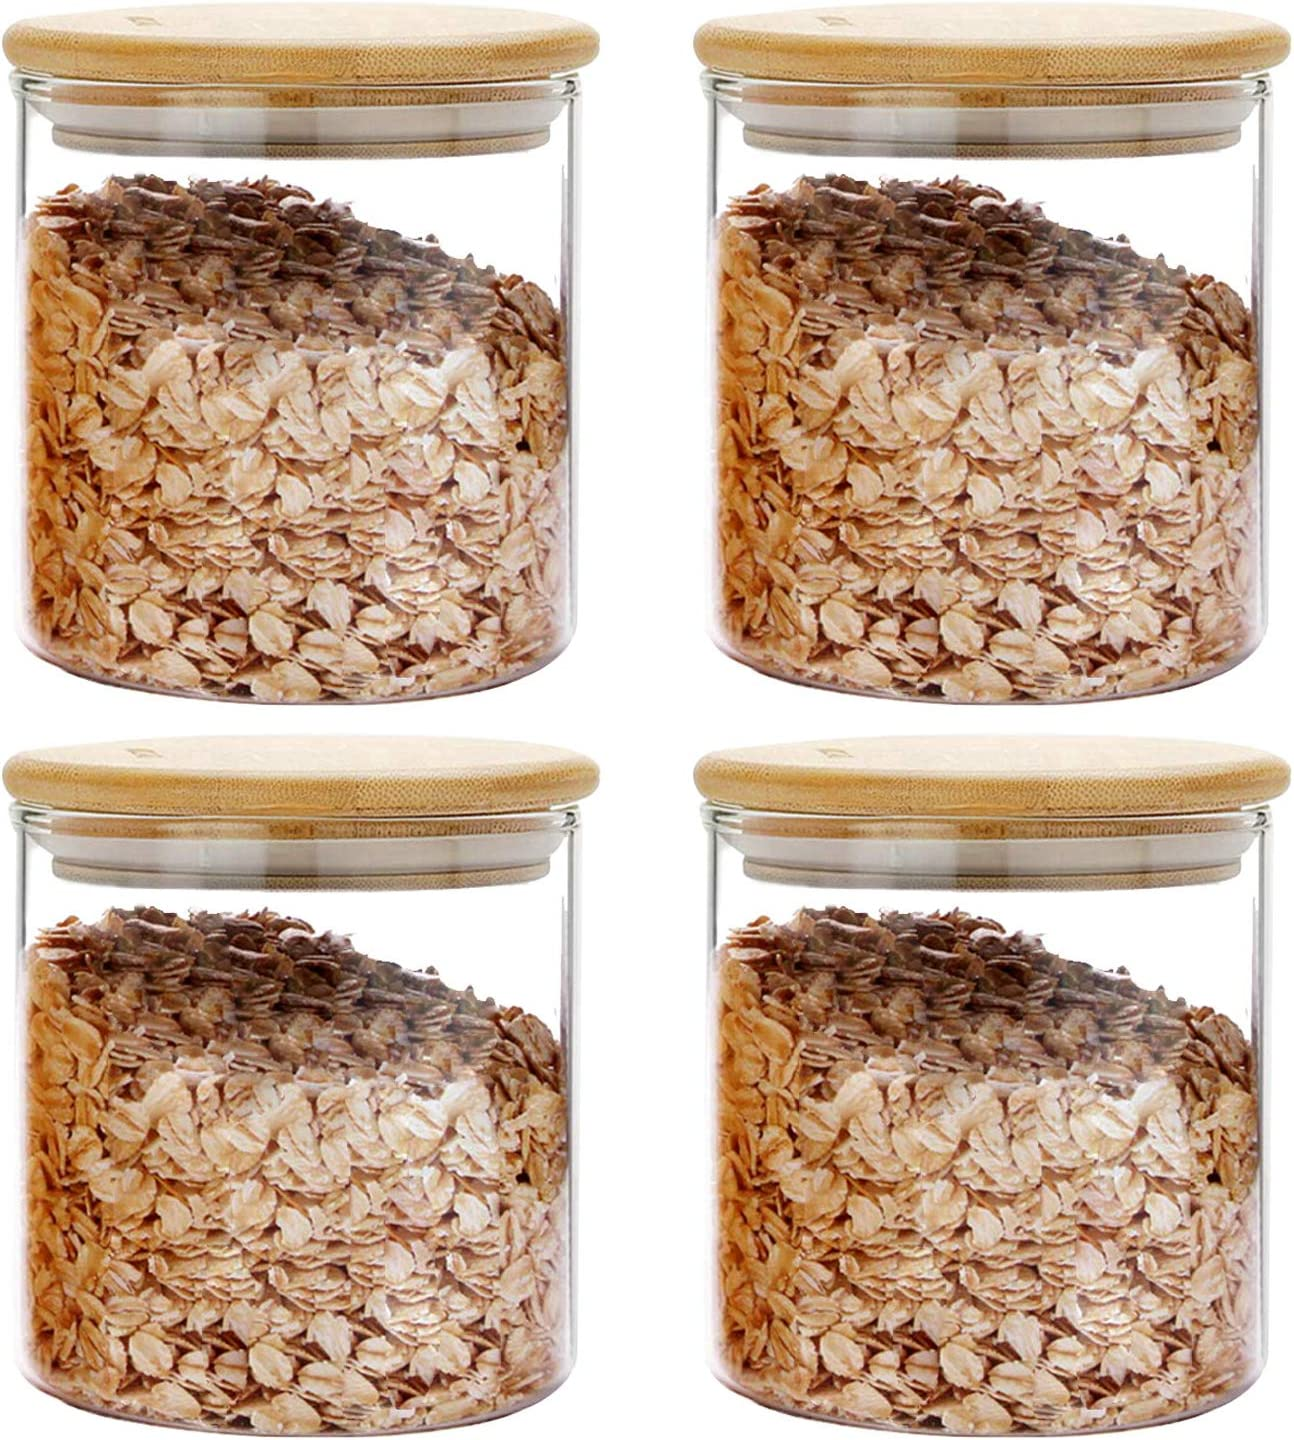 Glass Food Storage Jars Containers Bamboo with Airtight Moldiy supreme L Special price for a limited time